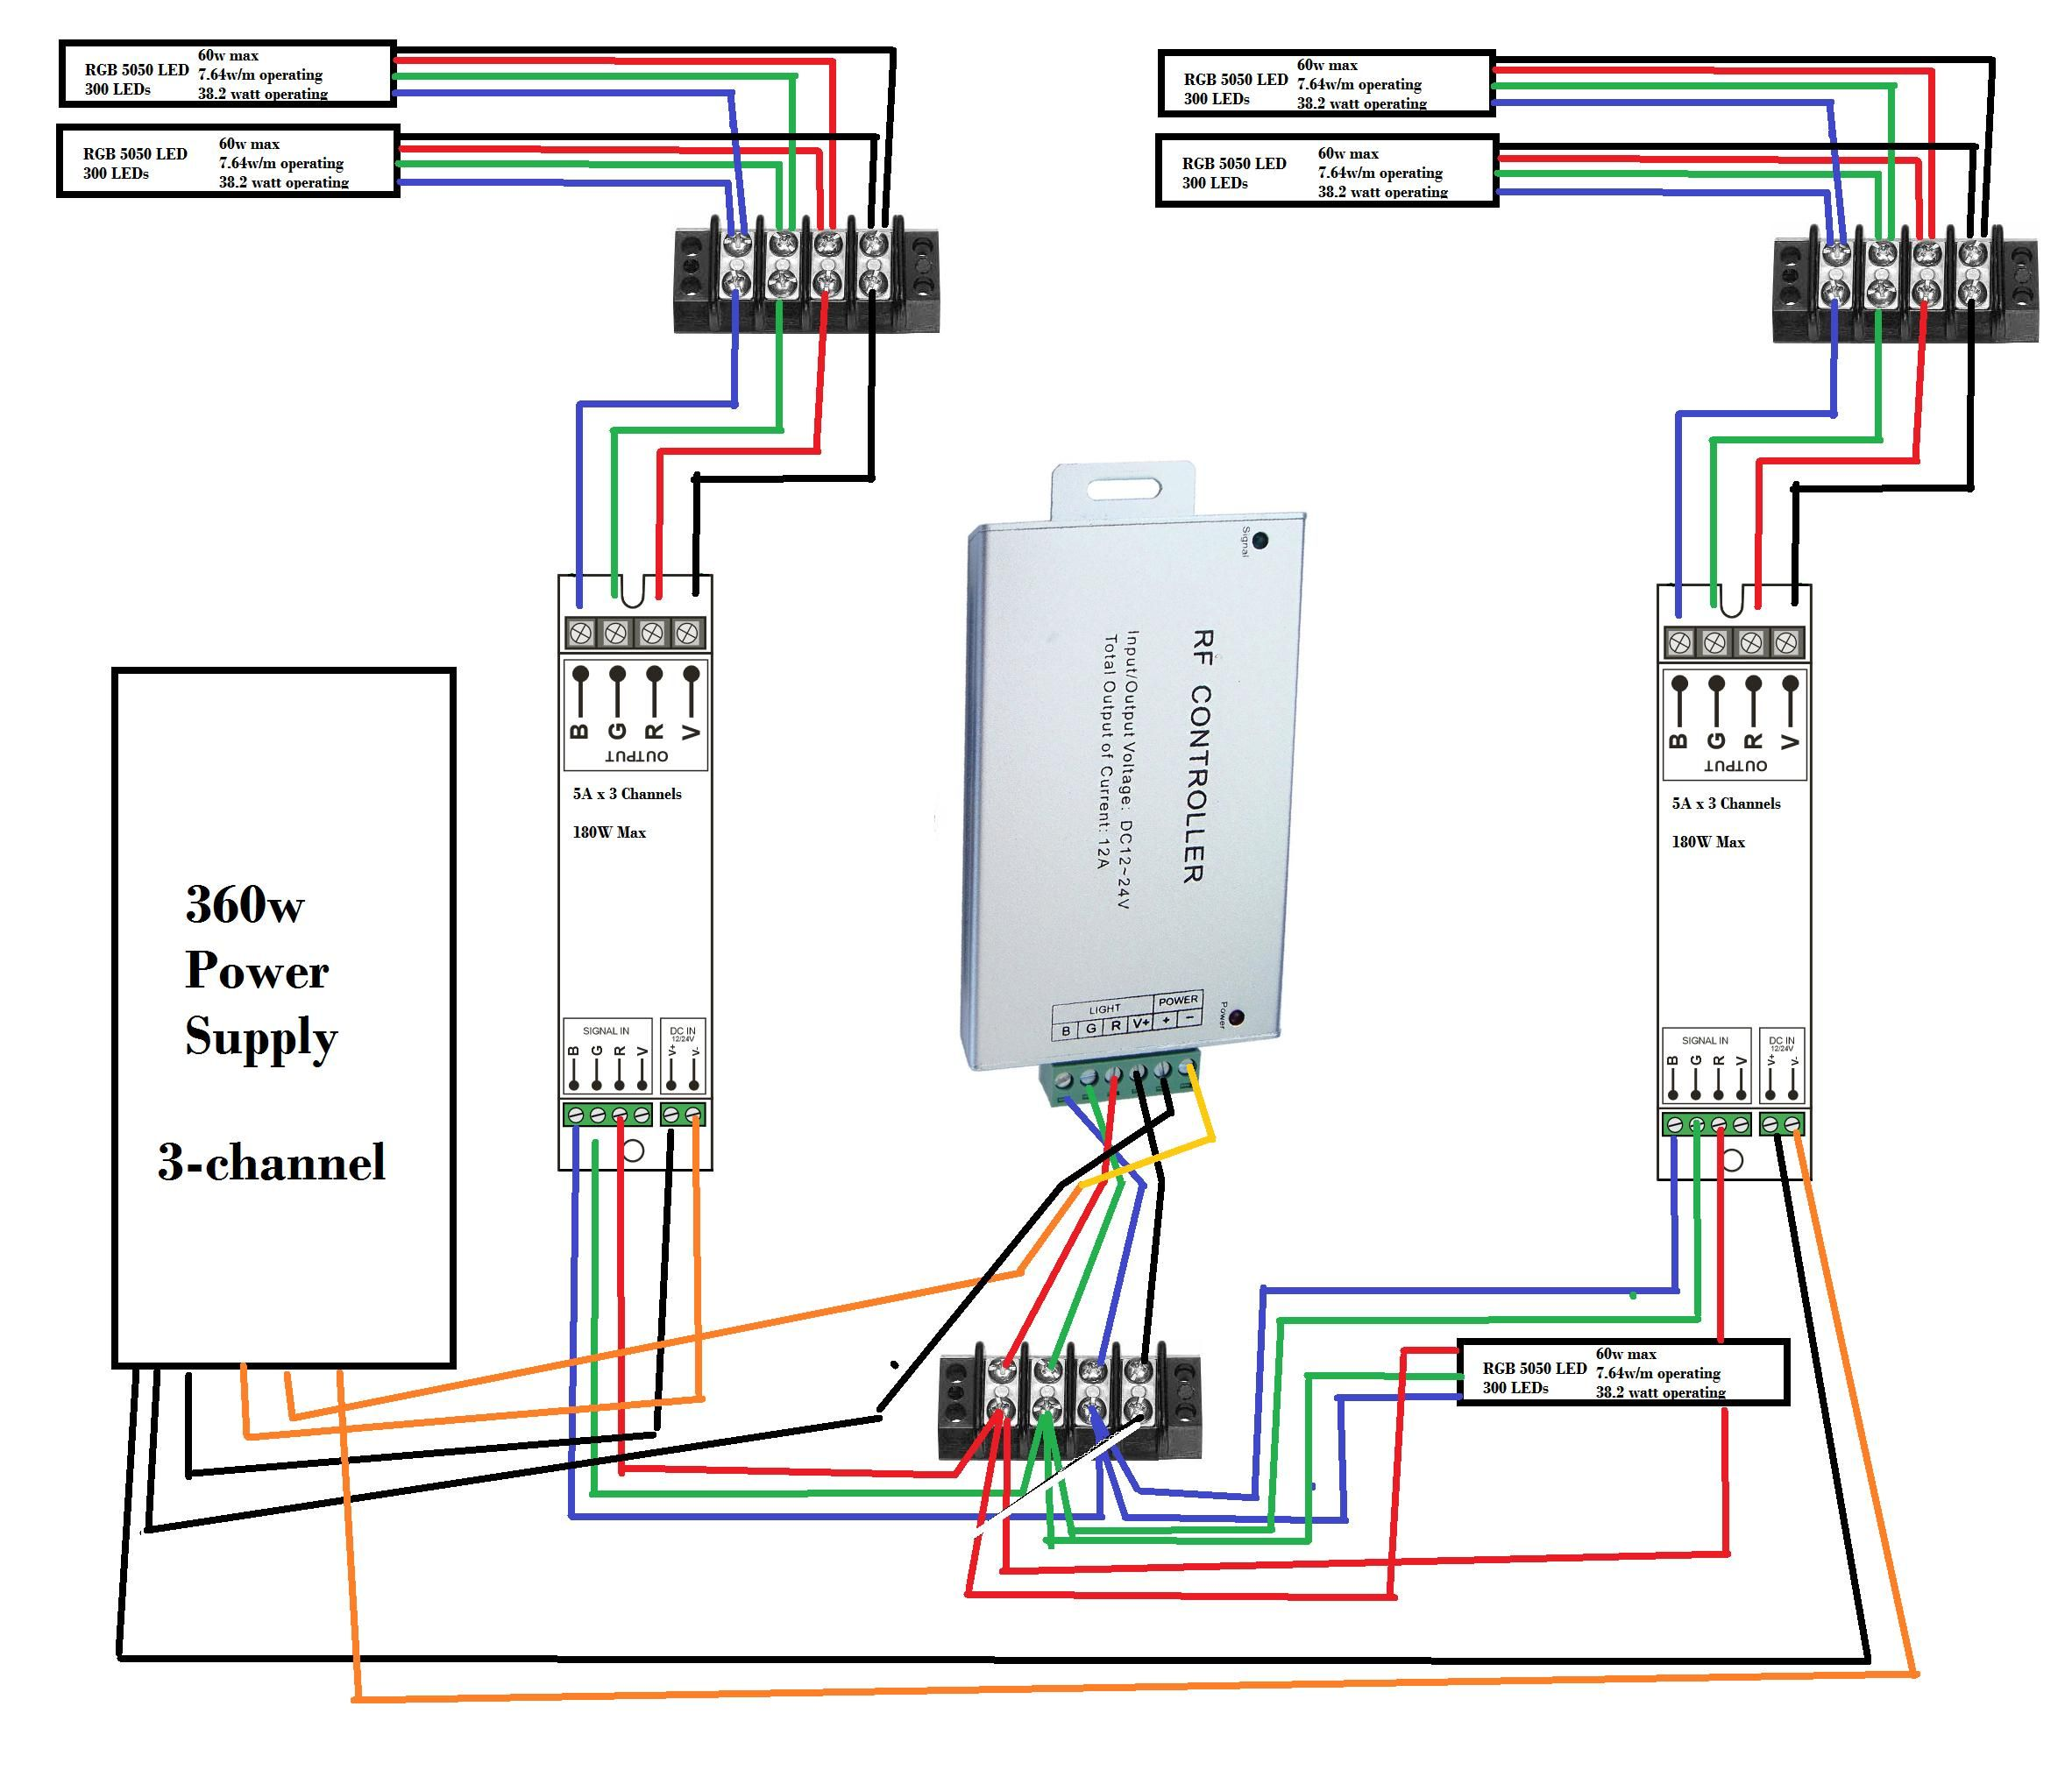 Image result for connecting led strip to 12 volt car battery power supply wiring  diagram | Led strip, Led strip lighting, Led | Batteries 12v Led Wiring Diagram |  | Pinterest